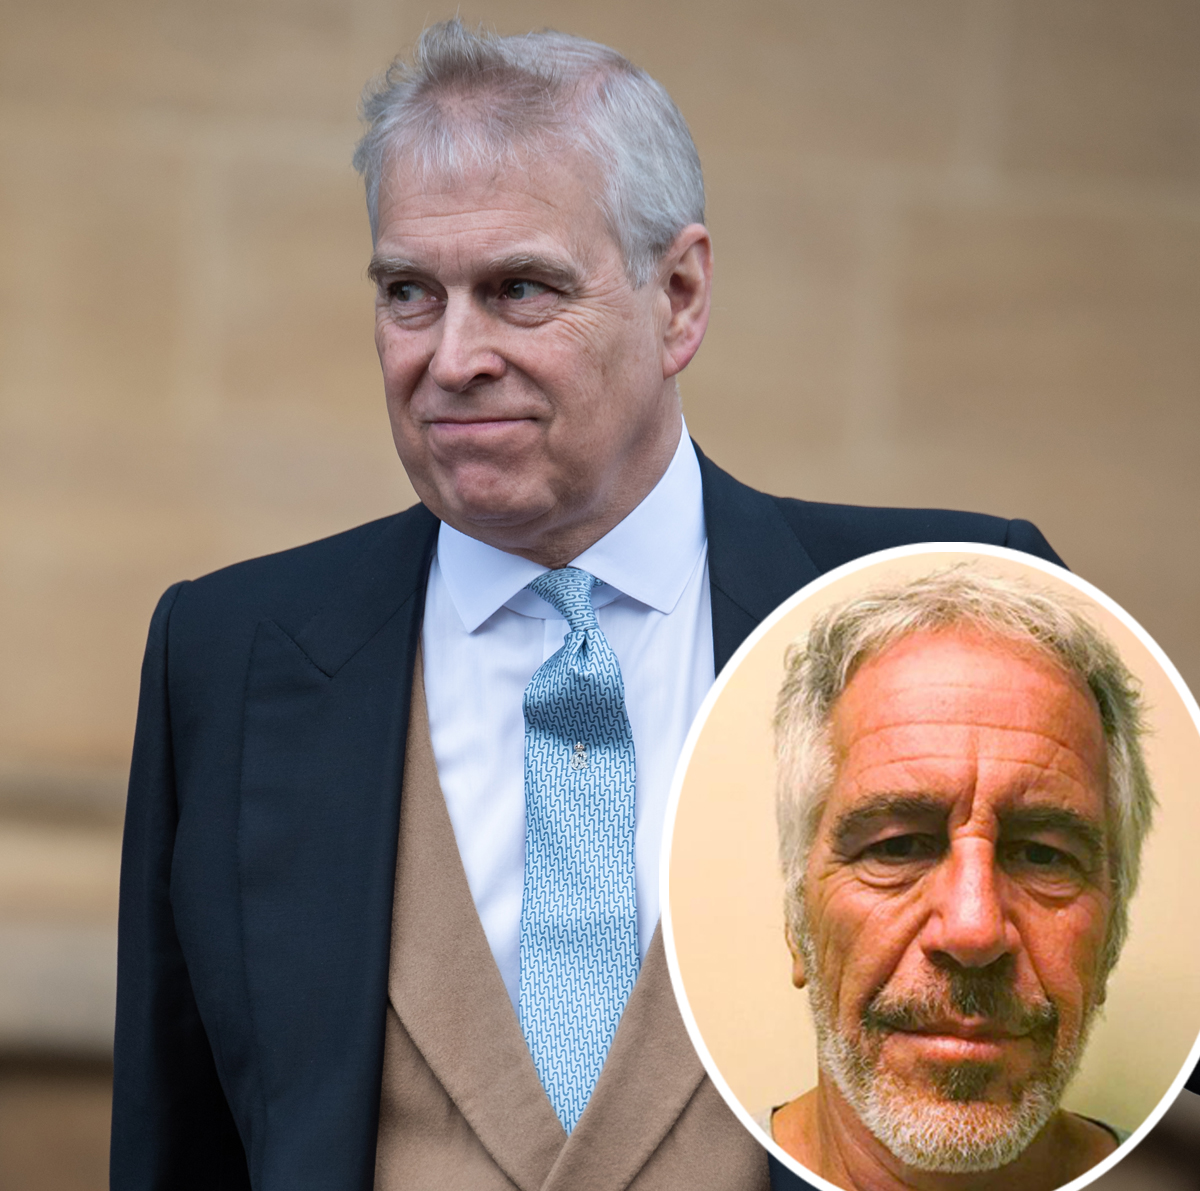 Prince Andrew accused of having orgy with Epstein and young girls